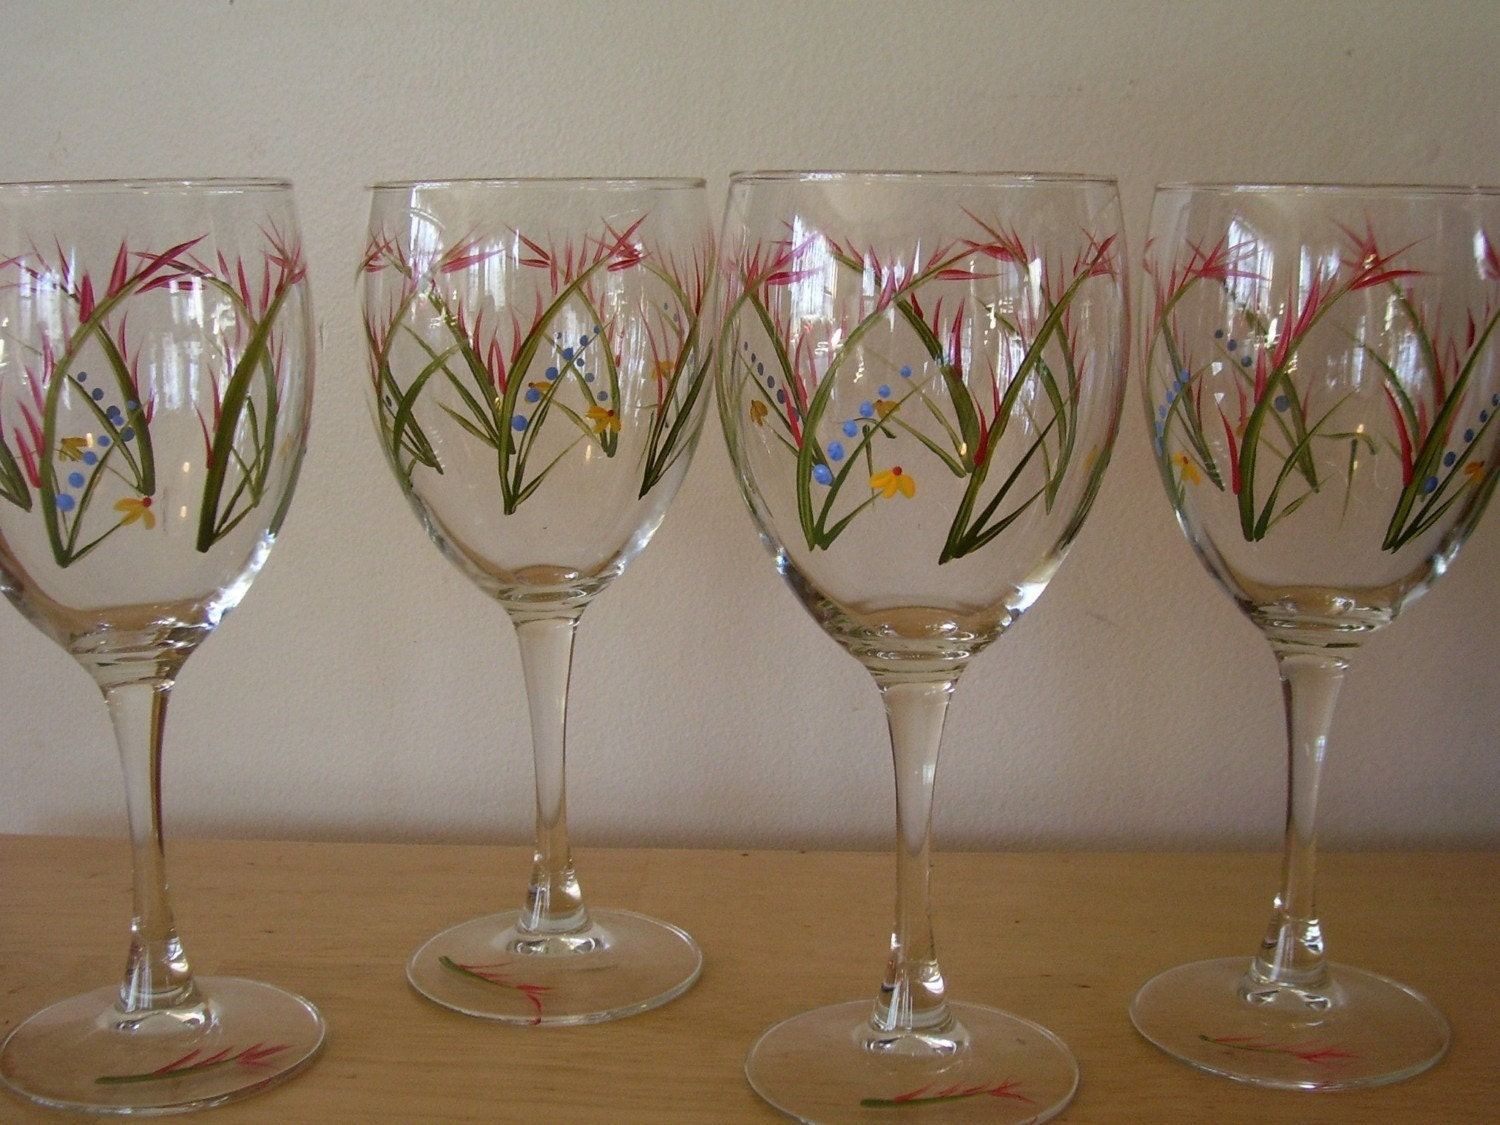 Hand Painted Wine Glasses Wild Flowers Set Of 4: images of painted wine glasses